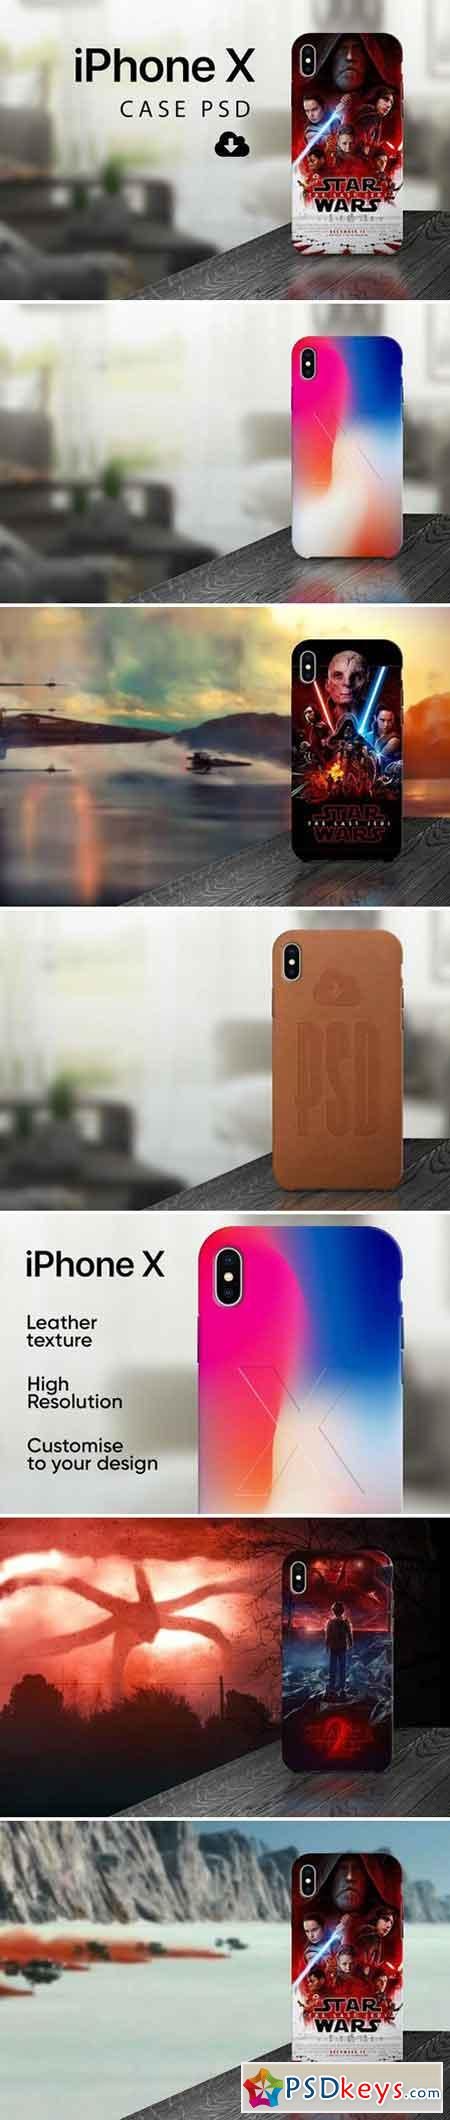 iPhone X - Case PSD mockup 2153270